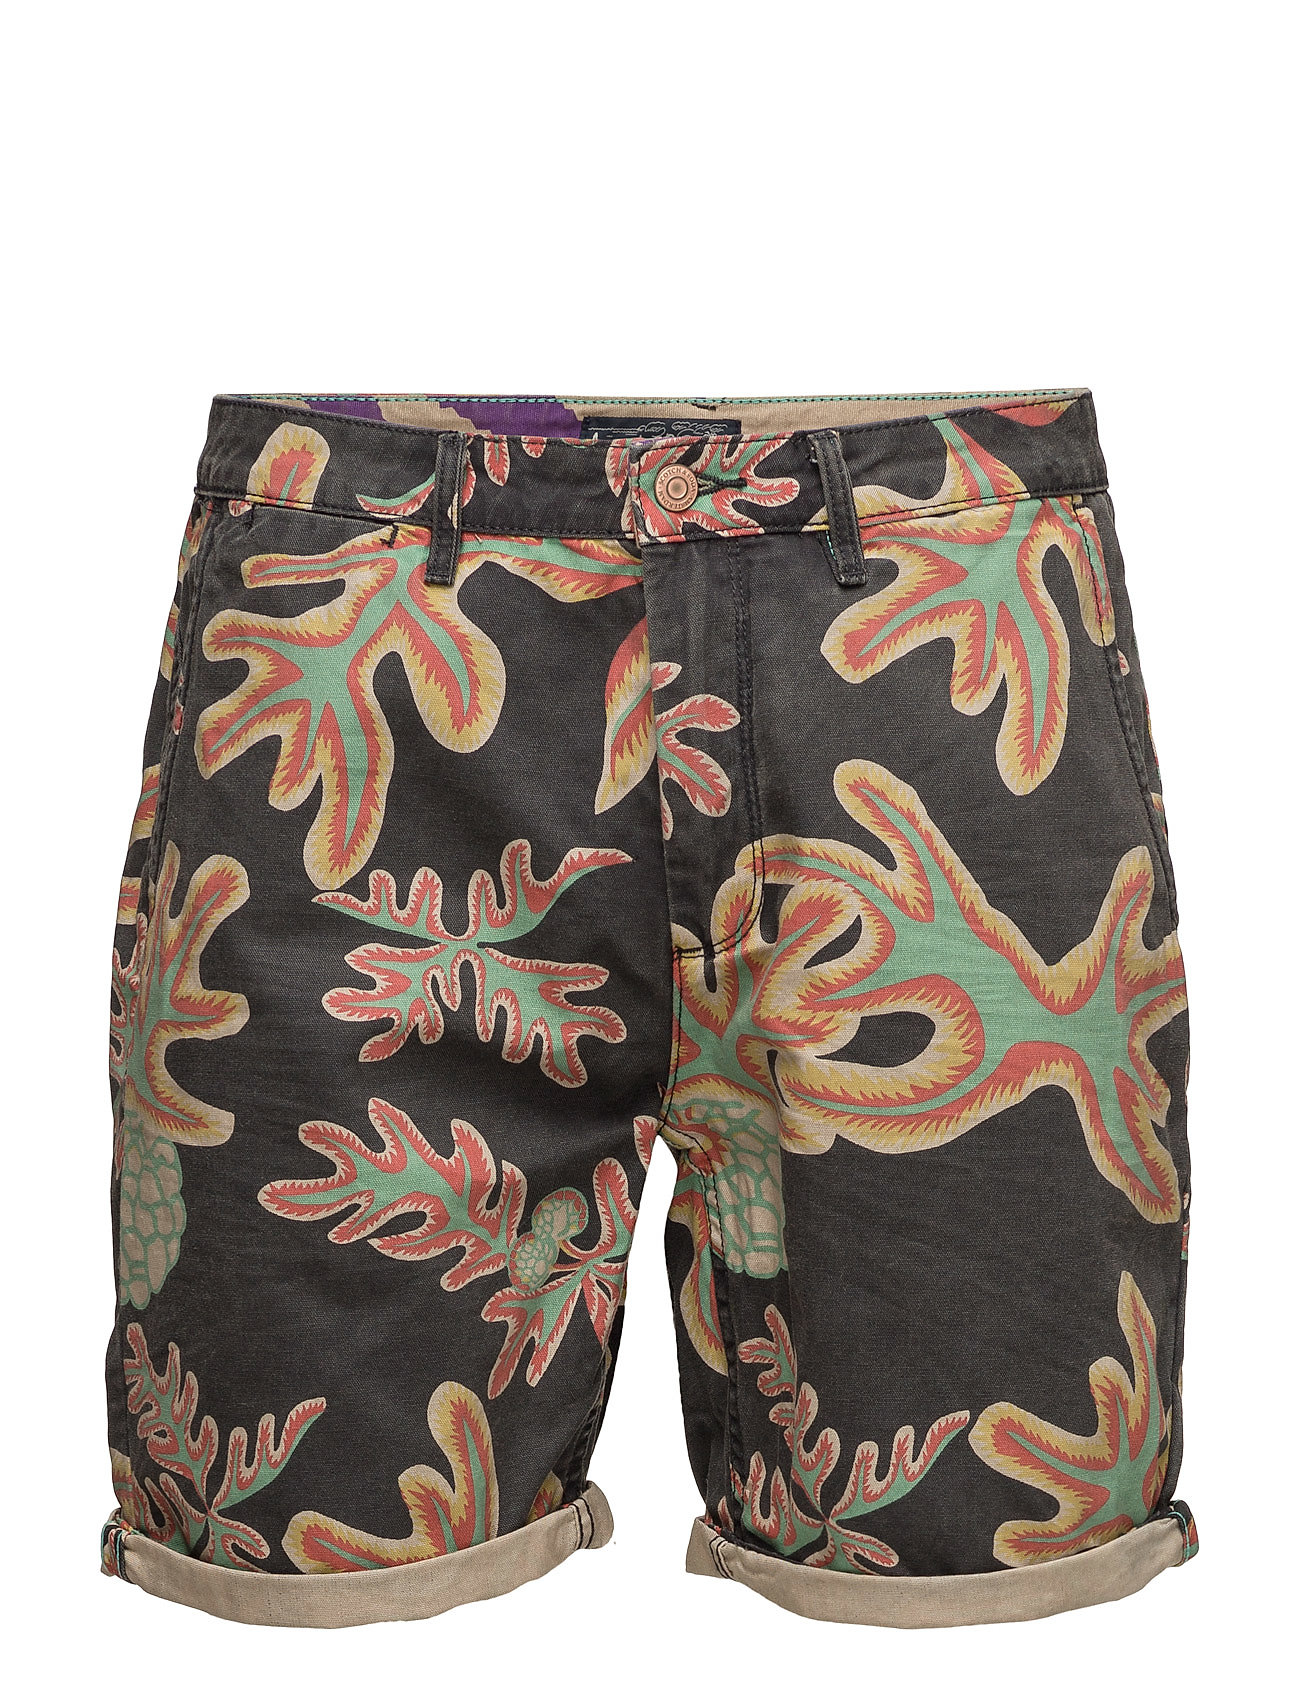 Short In Canvas With Heavy Spray Wash Outlook Scotch & Soda Bermuda shorts til Herrer i